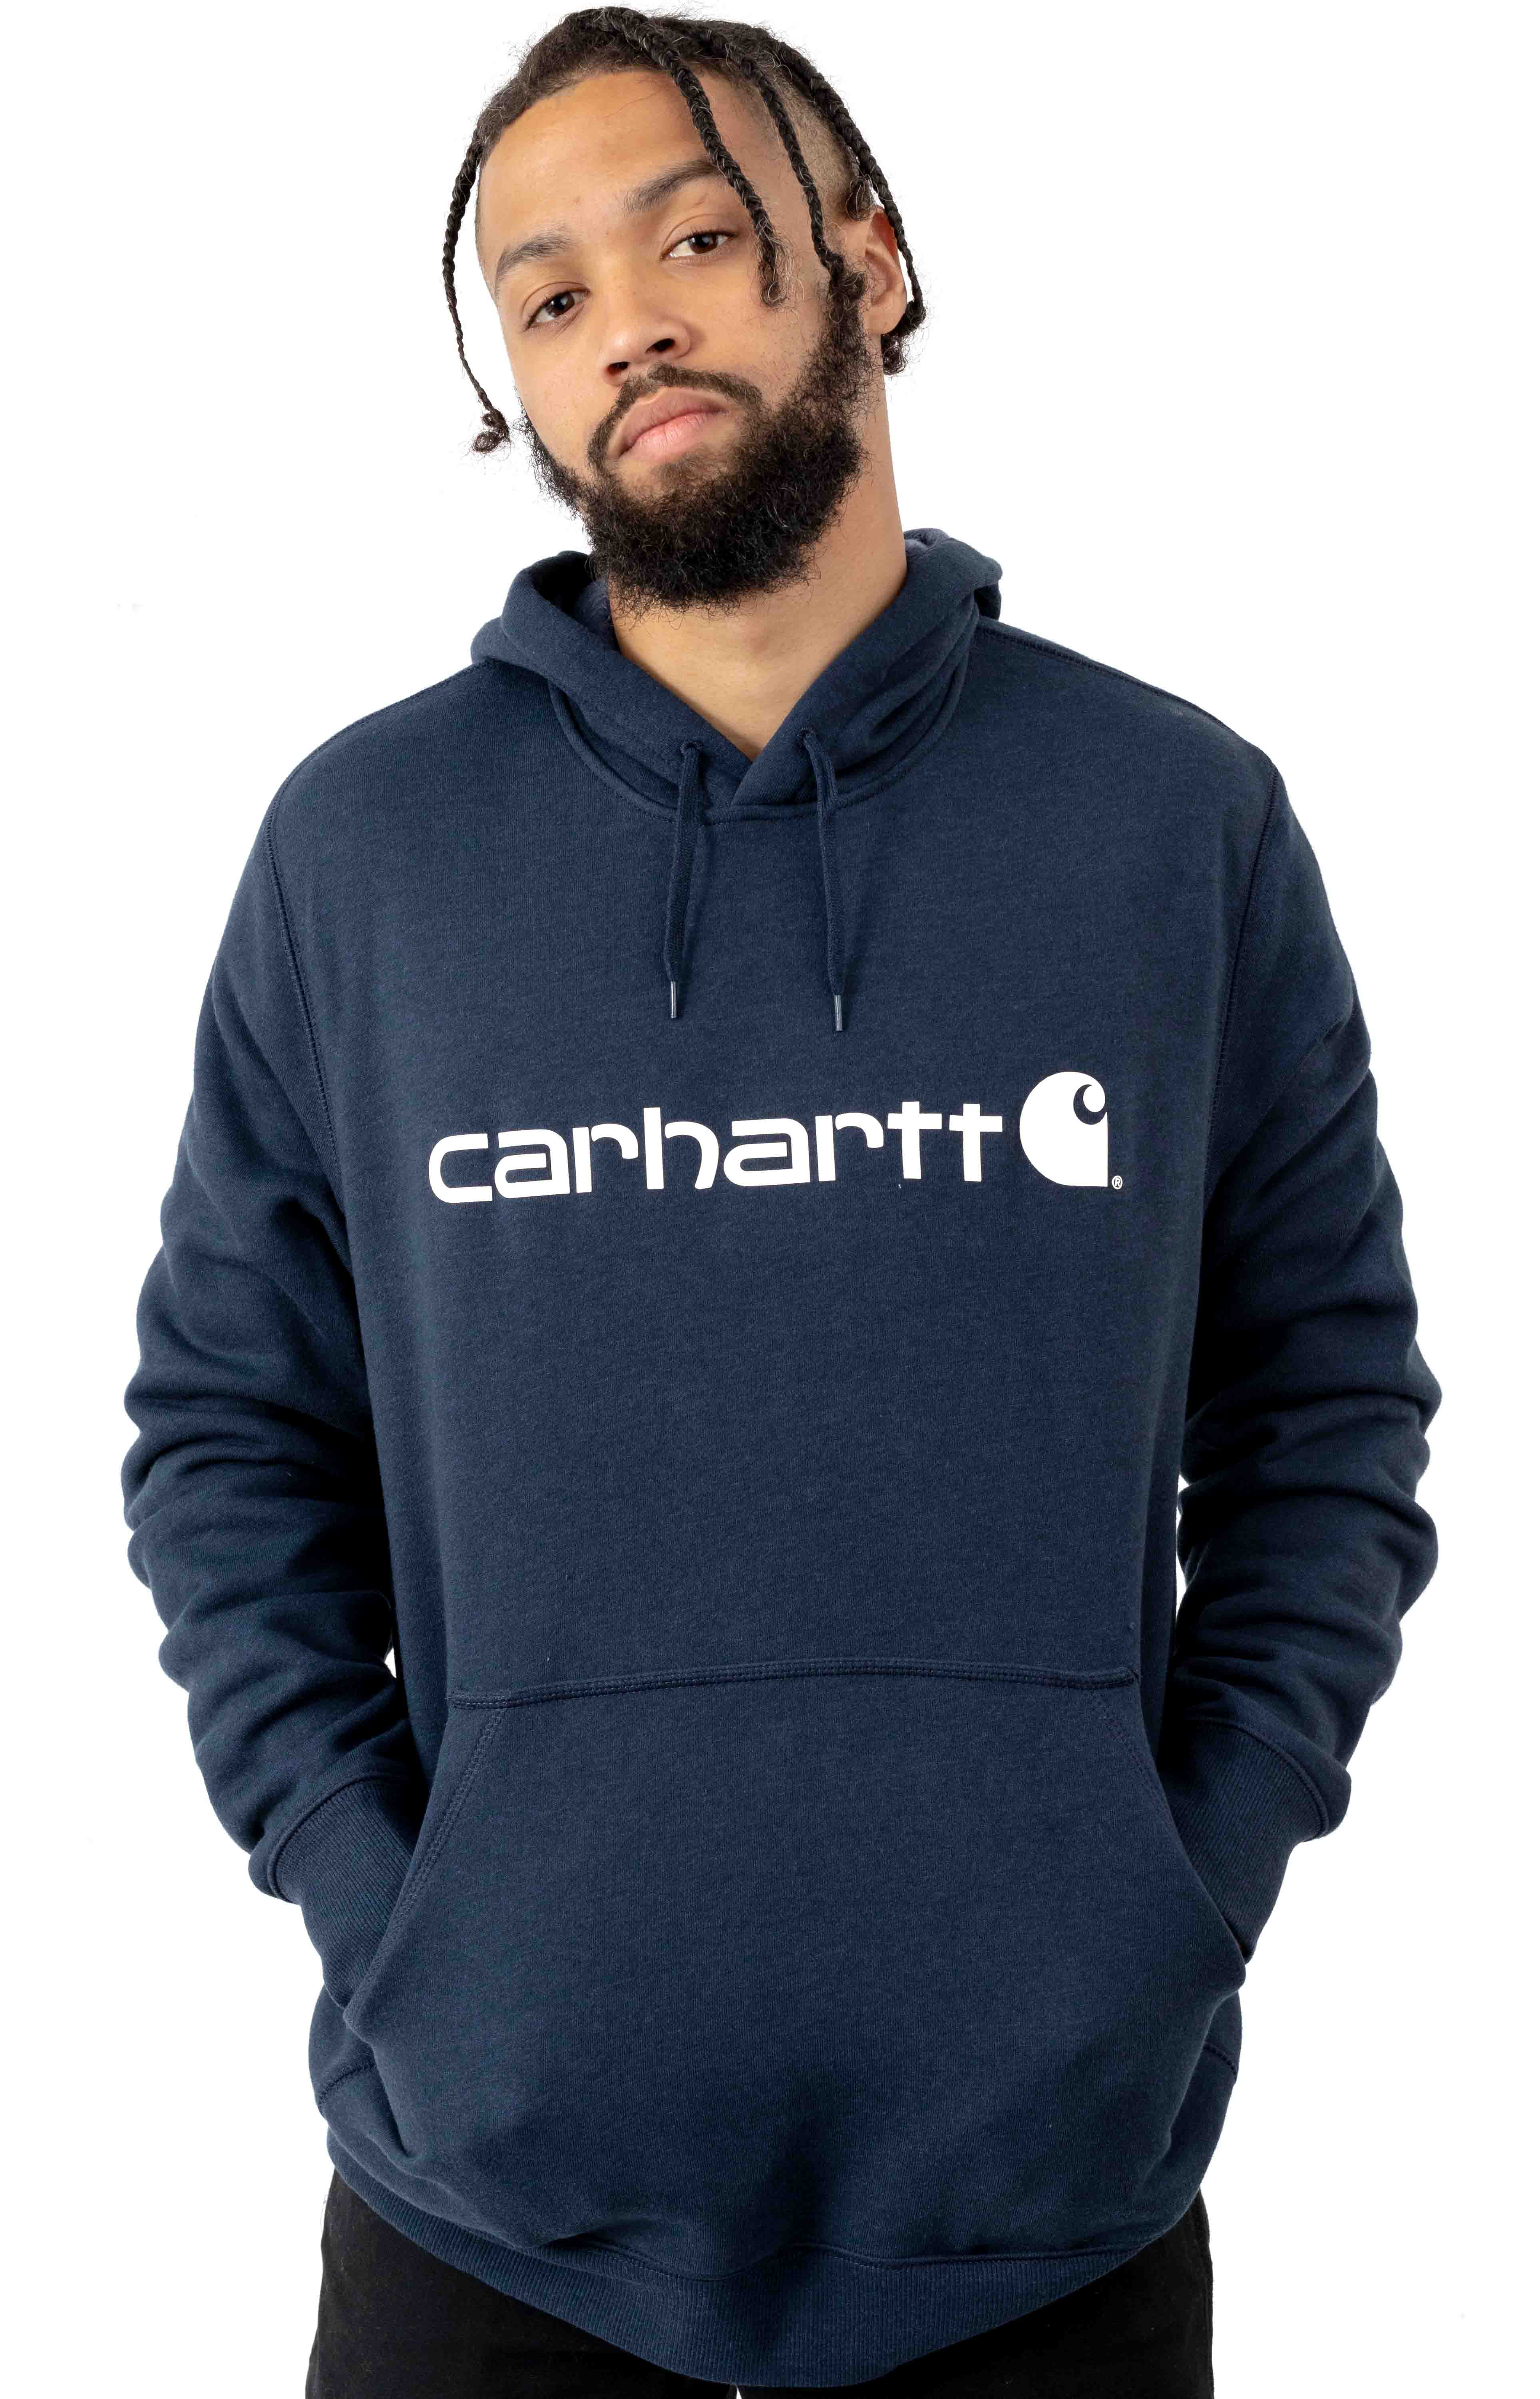 (103873) Force Delmont Signature Graphic Pullover Hoodie - Navy Heather